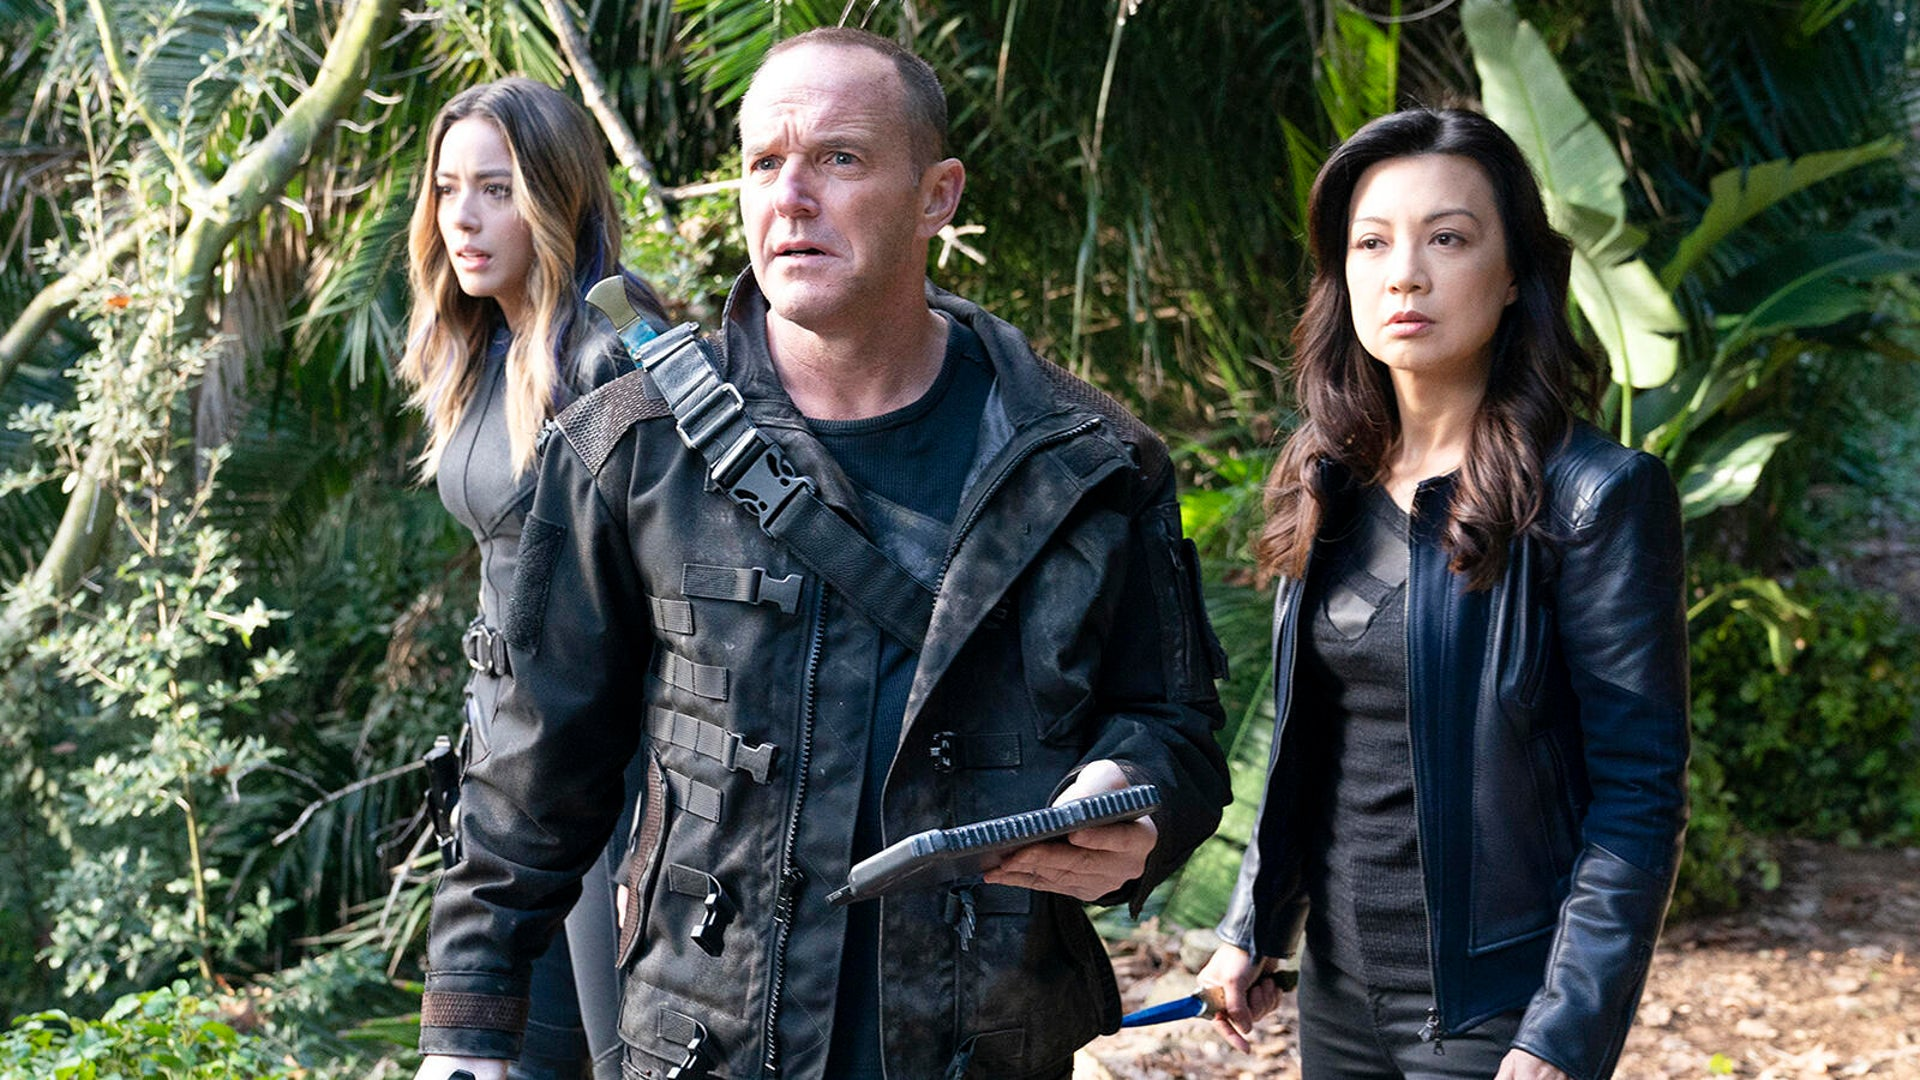 Chloe Bennet, Clark Gregg, and Ming-Na- Wen, Agents of S.H.I.E.L.D.